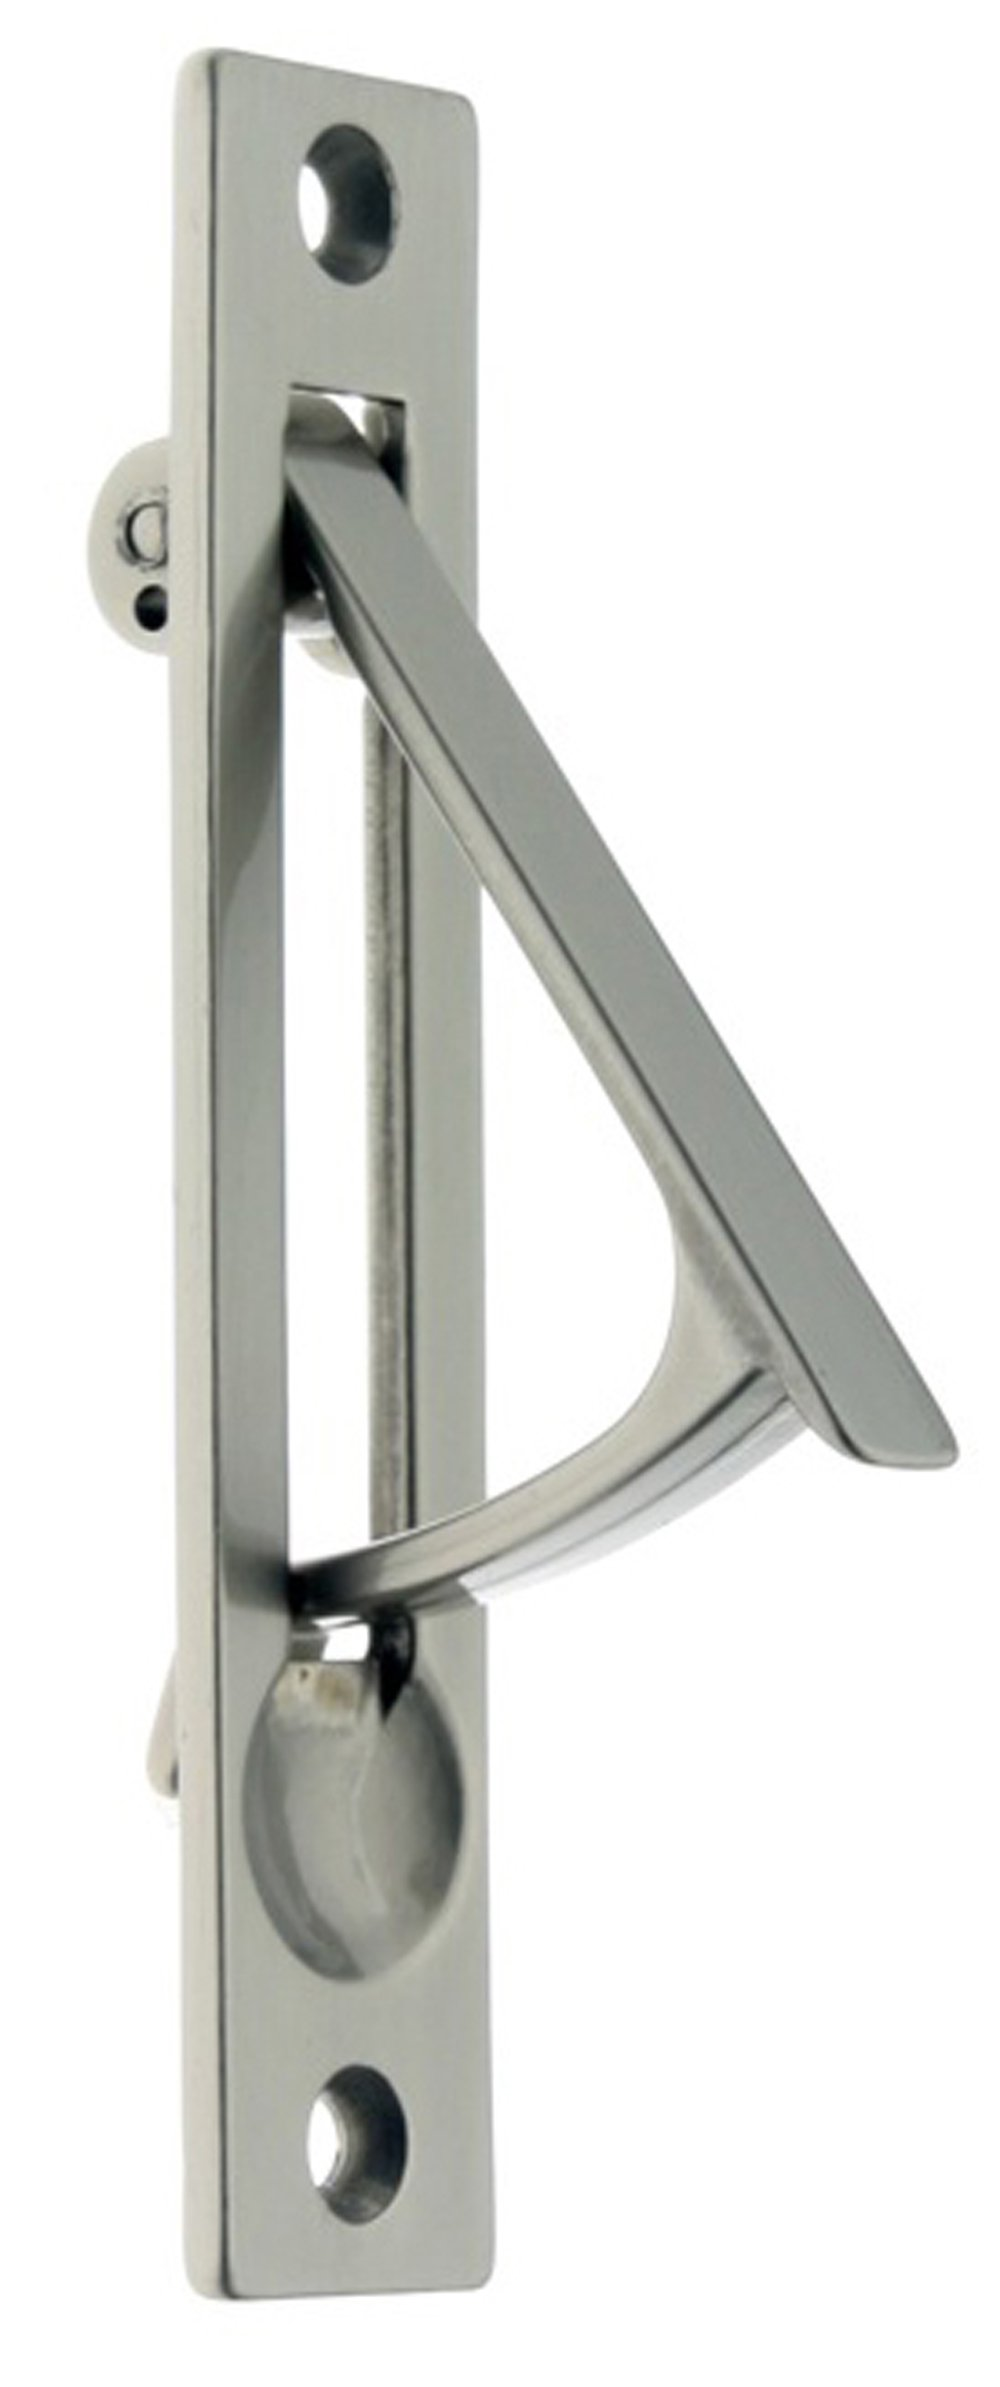 idh by St. Simons 14020-015 Professional Grade Quality Genuine Solid Brass Edge Pull, 4-Inch, Satin Nickel